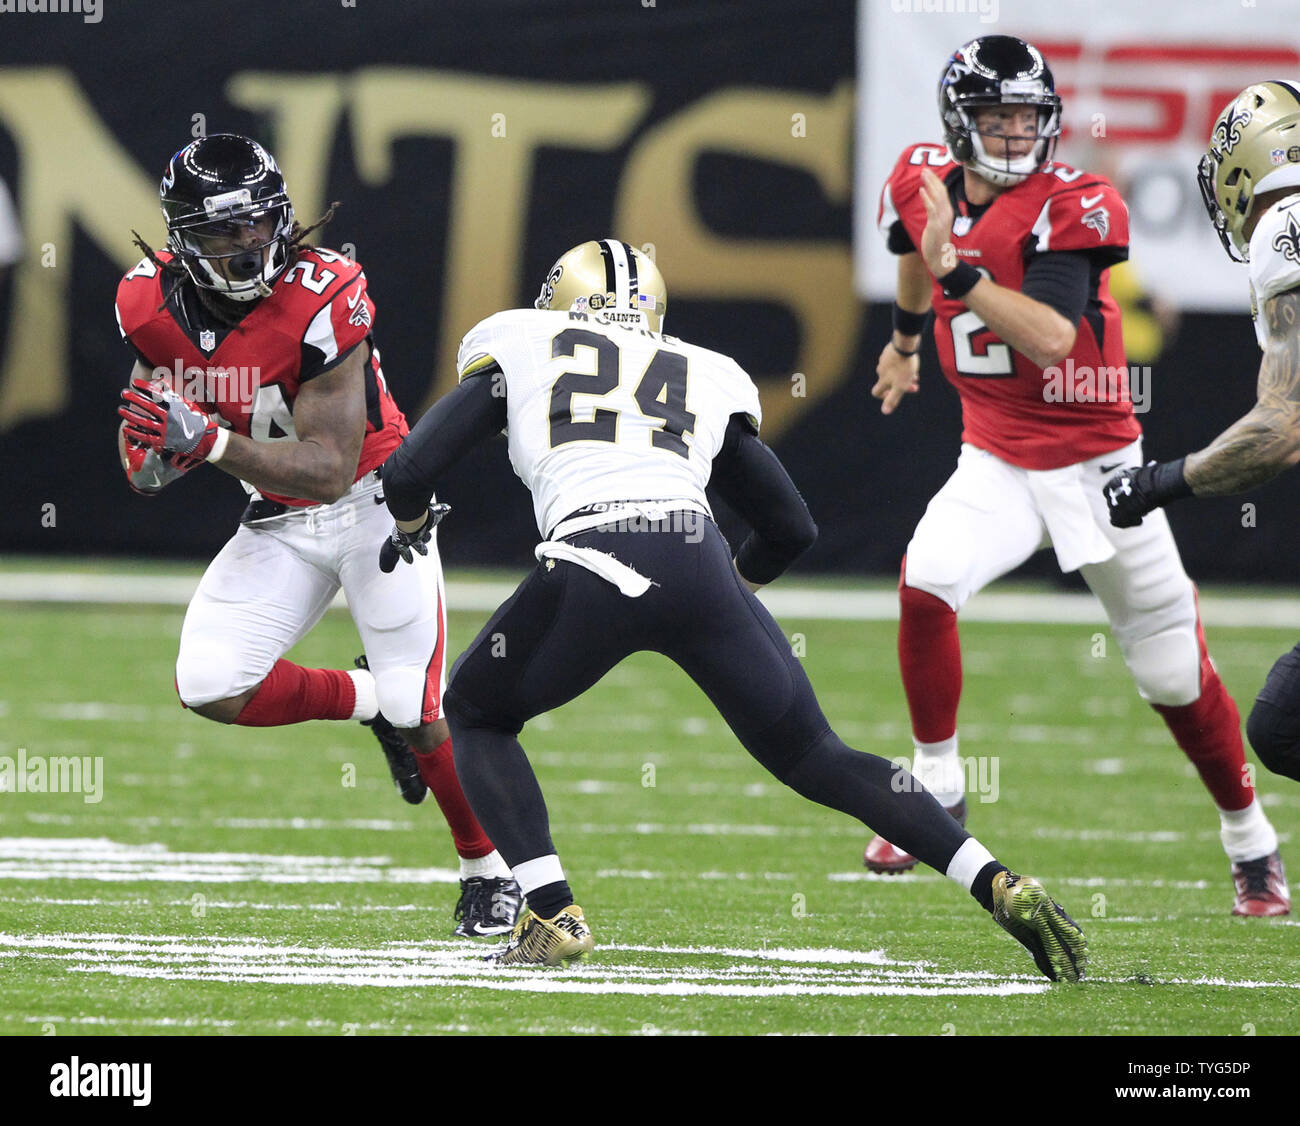 Atlanta Falcons running back Devonta Freeman (24) picks up 7